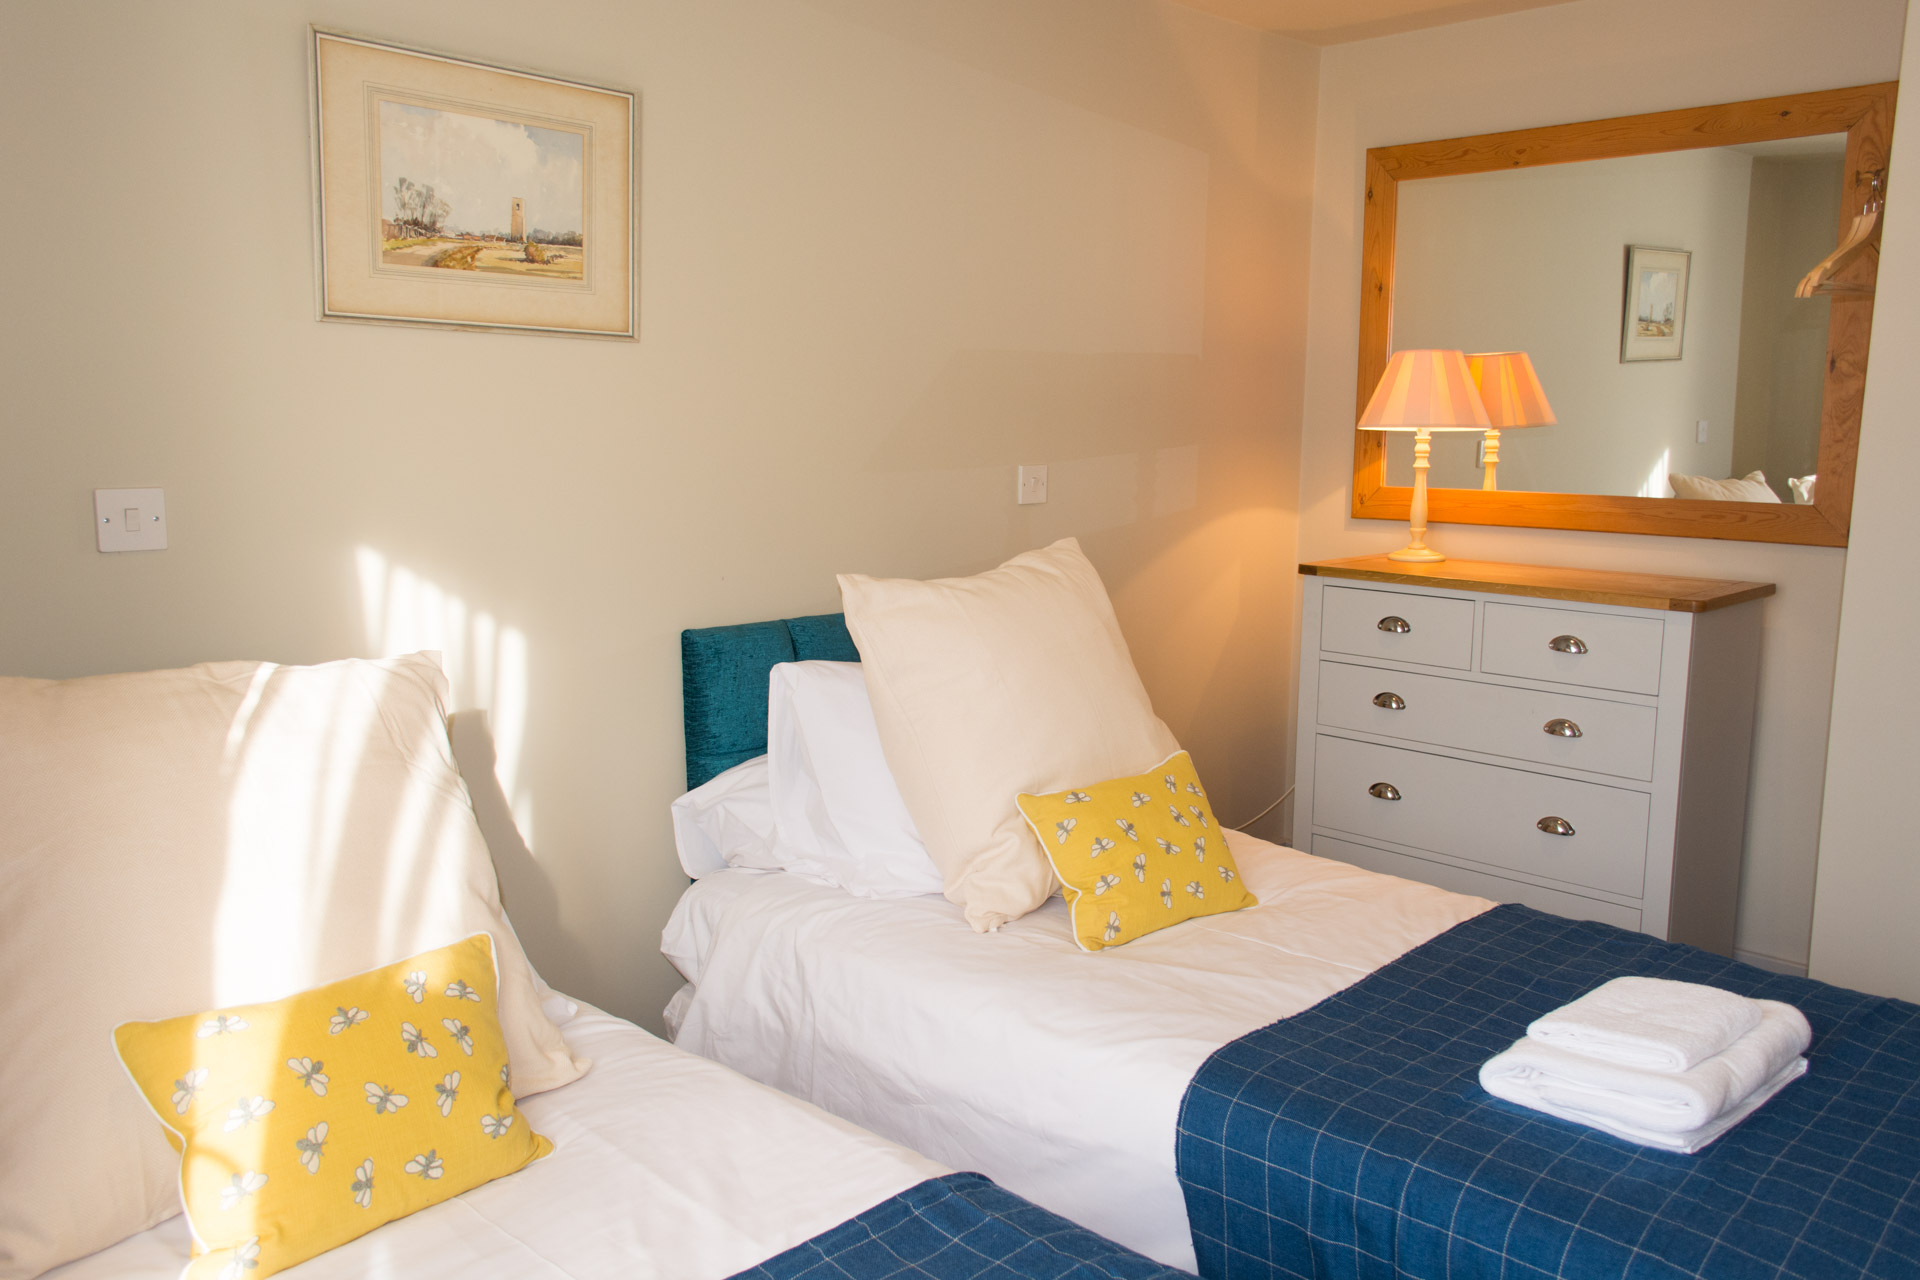 Holiday home twin room with blue blankets and white linen.